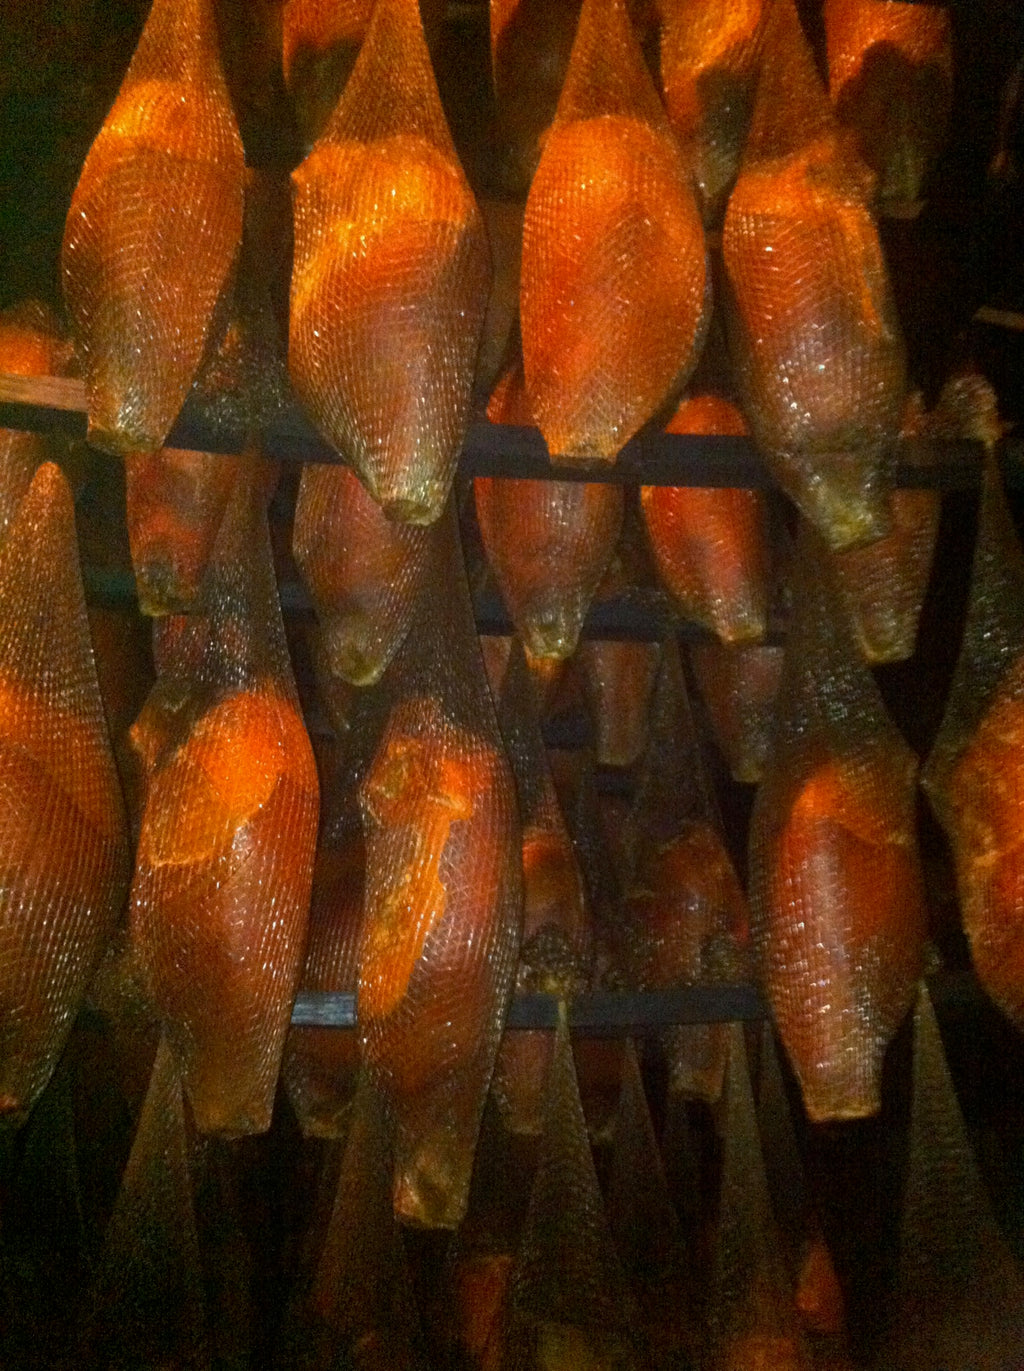 Father's Country Hams Aging in our Smoke House